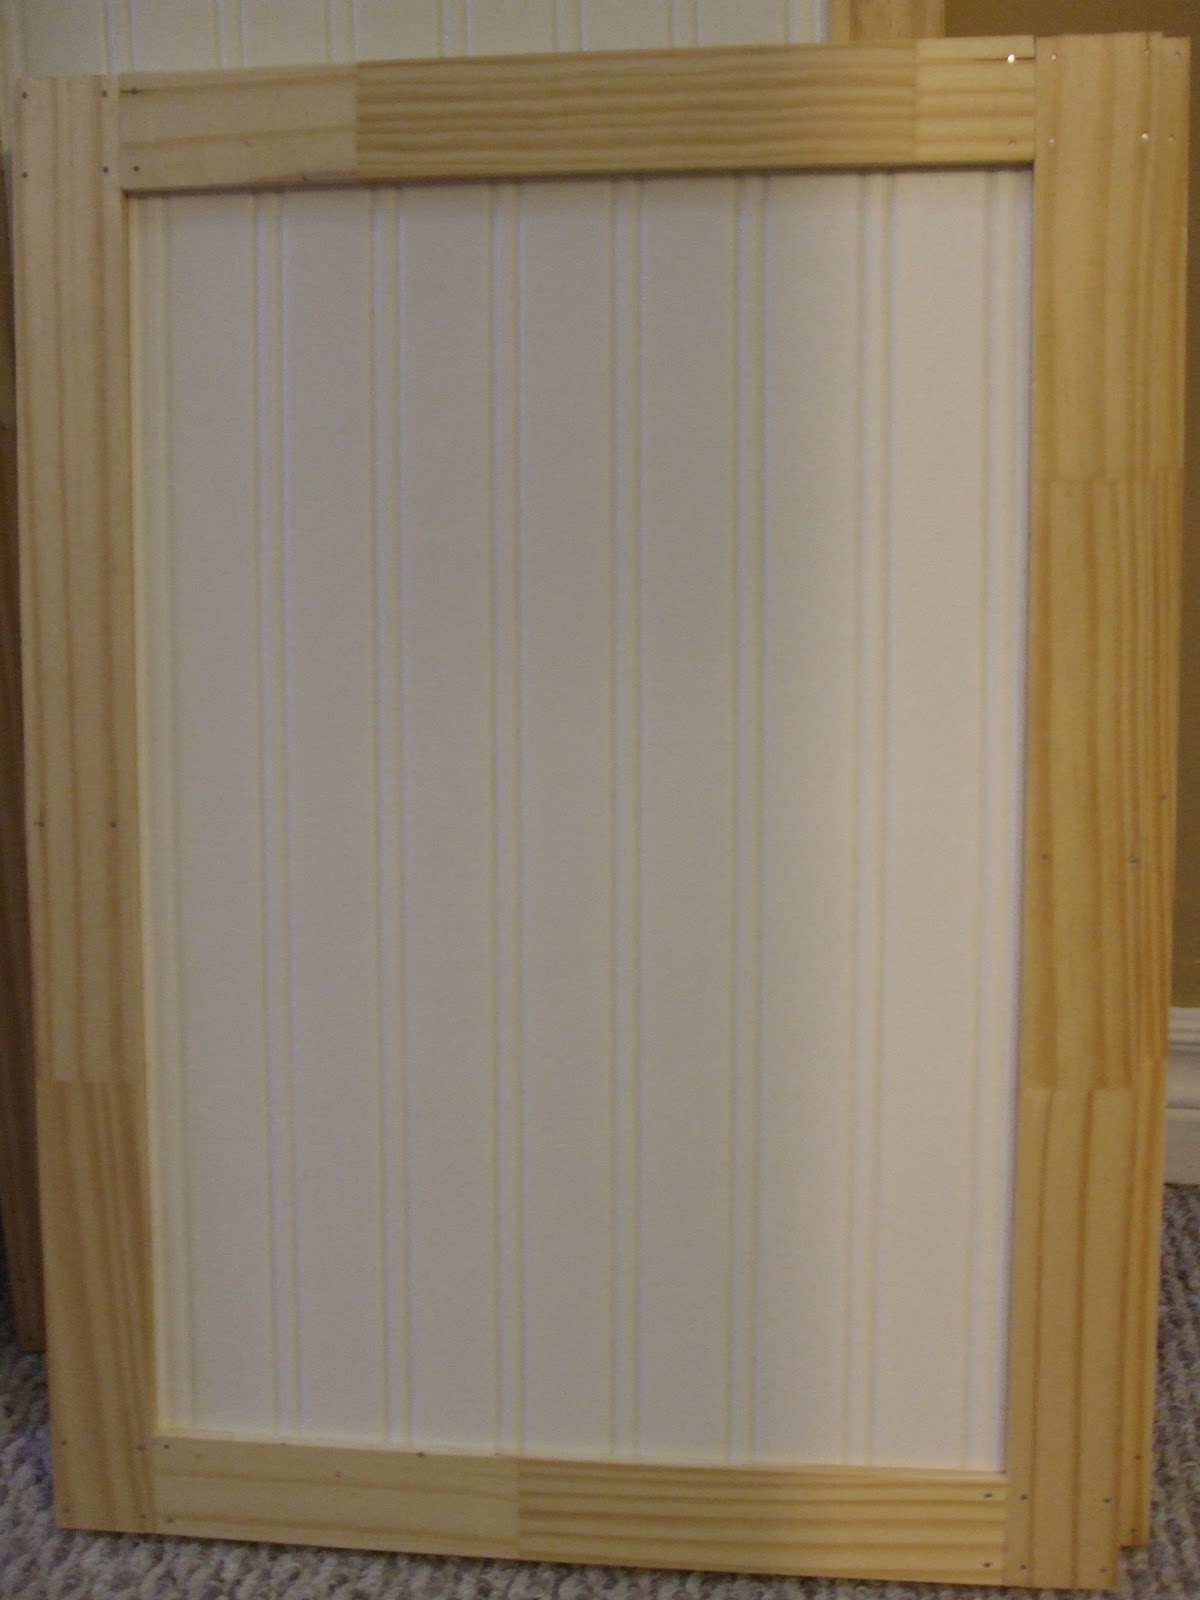 Simply chic treasures kitchen cabinet makeover part 2 for Add beadboard to kitchen cabinets